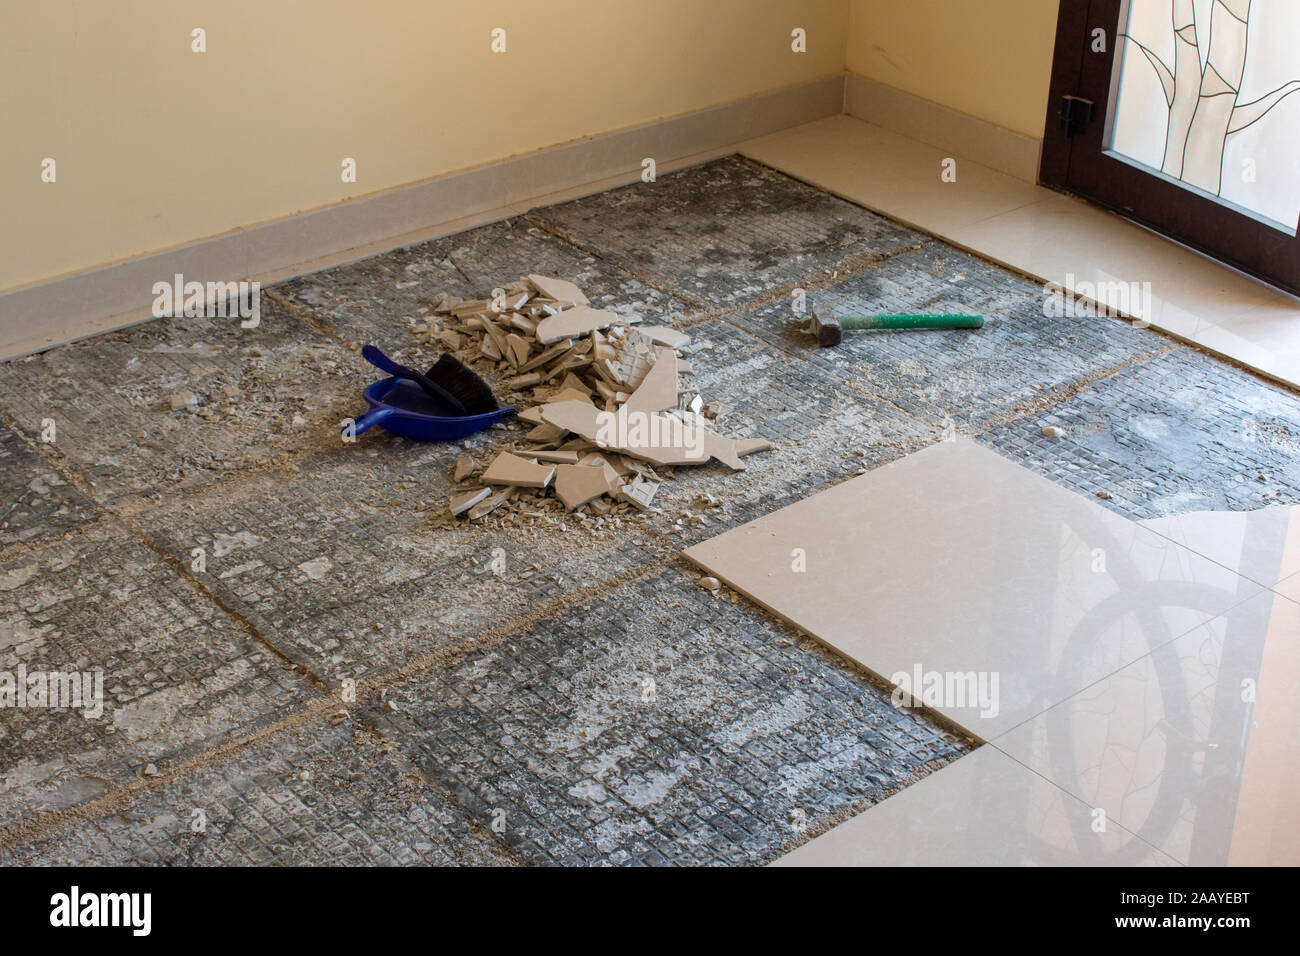 https www alamy com home renovation of ceramic tiles in an entrance way breaking up the tiles diy and cleaning up broken pieces before laying new tiles with mortar and c image333747564 html